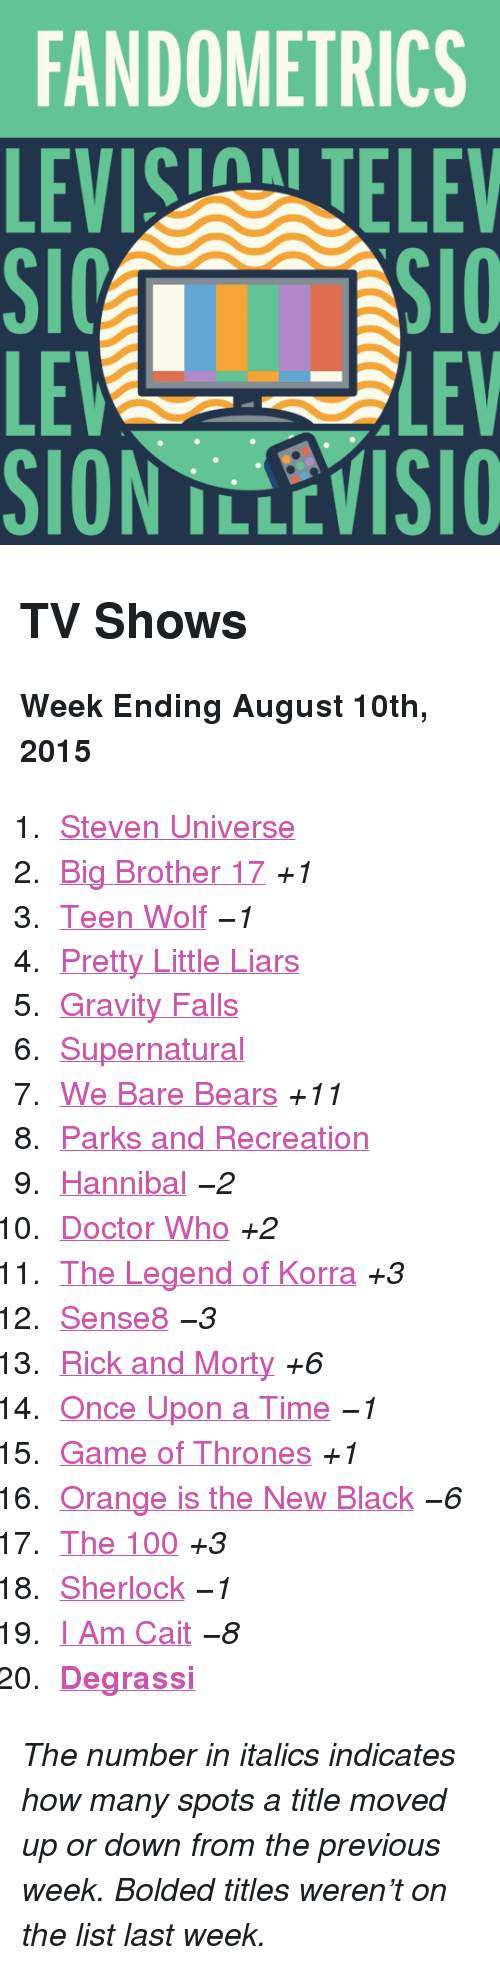 """Parks and Recreation: FANDOMETRICS  LEVIS TELEV  LE  SION TLLEVISIO  LEV <h2>TV Shows</h2><p><b>Week Ending August 10th, 2015</b></p><ol><li><a href=""""http://www.tumblr.com/search/steven%20universe"""">Steven Universe</a></li>  <li><a href=""""http://www.tumblr.com/search/bb17"""">Big Brother 17</a><i>+1</i></li>  <li><a href=""""http://www.tumblr.com/search/teen%20wolf"""">Teen Wolf</a><i>−1</i></li>  <li><a href=""""http://www.tumblr.com/search/pretty%20little%20liars"""">Pretty Little Liars</a></li>  <li><a href=""""http://www.tumblr.com/search/gravity%20falls"""">Gravity Falls</a></li>  <li><a href=""""http://www.tumblr.com/search/supernatural"""">Supernatural</a></li>  <li><a href=""""http://www.tumblr.com/search/we%20bare%20bears"""">We Bare Bears</a><i>+11</i></li>  <li><a href=""""http://www.tumblr.com/search/parks%20and%20recreation"""">Parks and Recreation</a></li>  <li><a href=""""http://www.tumblr.com/search/hannibal"""">Hannibal</a><i>−2</i></li>  <li><a href=""""http://www.tumblr.com/search/doctor%20who"""">Doctor Who</a><i>+2</i></li>  <li><a href=""""http://www.tumblr.com/search/legend%20of%20korra"""">The Legend of Korra</a><i>+3</i></li>  <li><a href=""""http://www.tumblr.com/search/sense8"""">Sense8</a><i>−3</i></li>  <li><a href=""""http://www.tumblr.com/search/rick%20and%20morty"""">Rick and Morty</a><i>+6</i></li>  <li><a href=""""http://www.tumblr.com/search/ouat"""">Once Upon a Time</a><i>−1</i></li>  <li><a href=""""http://www.tumblr.com/search/game%20of%20thrones"""">Game of Thrones</a><i>+1</i></li>  <li><a href=""""http://www.tumblr.com/search/oitnb"""">Orange is the New Black</a><i>−6</i></li>  <li><a href=""""http://www.tumblr.com/search/the%20100"""">The 100</a><i>+3</i></li>  <li><a href=""""http://www.tumblr.com/search/sherlock"""">Sherlock</a><i>−1</i></li>  <li><a href=""""http://www.tumblr.com/search/i%20am%20cait"""">I Am Cait</a><i>−8</i></li>  <li><a href=""""http://www.tumblr.com/search/degrassi""""><b>Degrassi</b></a></li></ol><p><i>The number in italics indicates how many spots a title moved up or down from the previous week. Bolded titles """